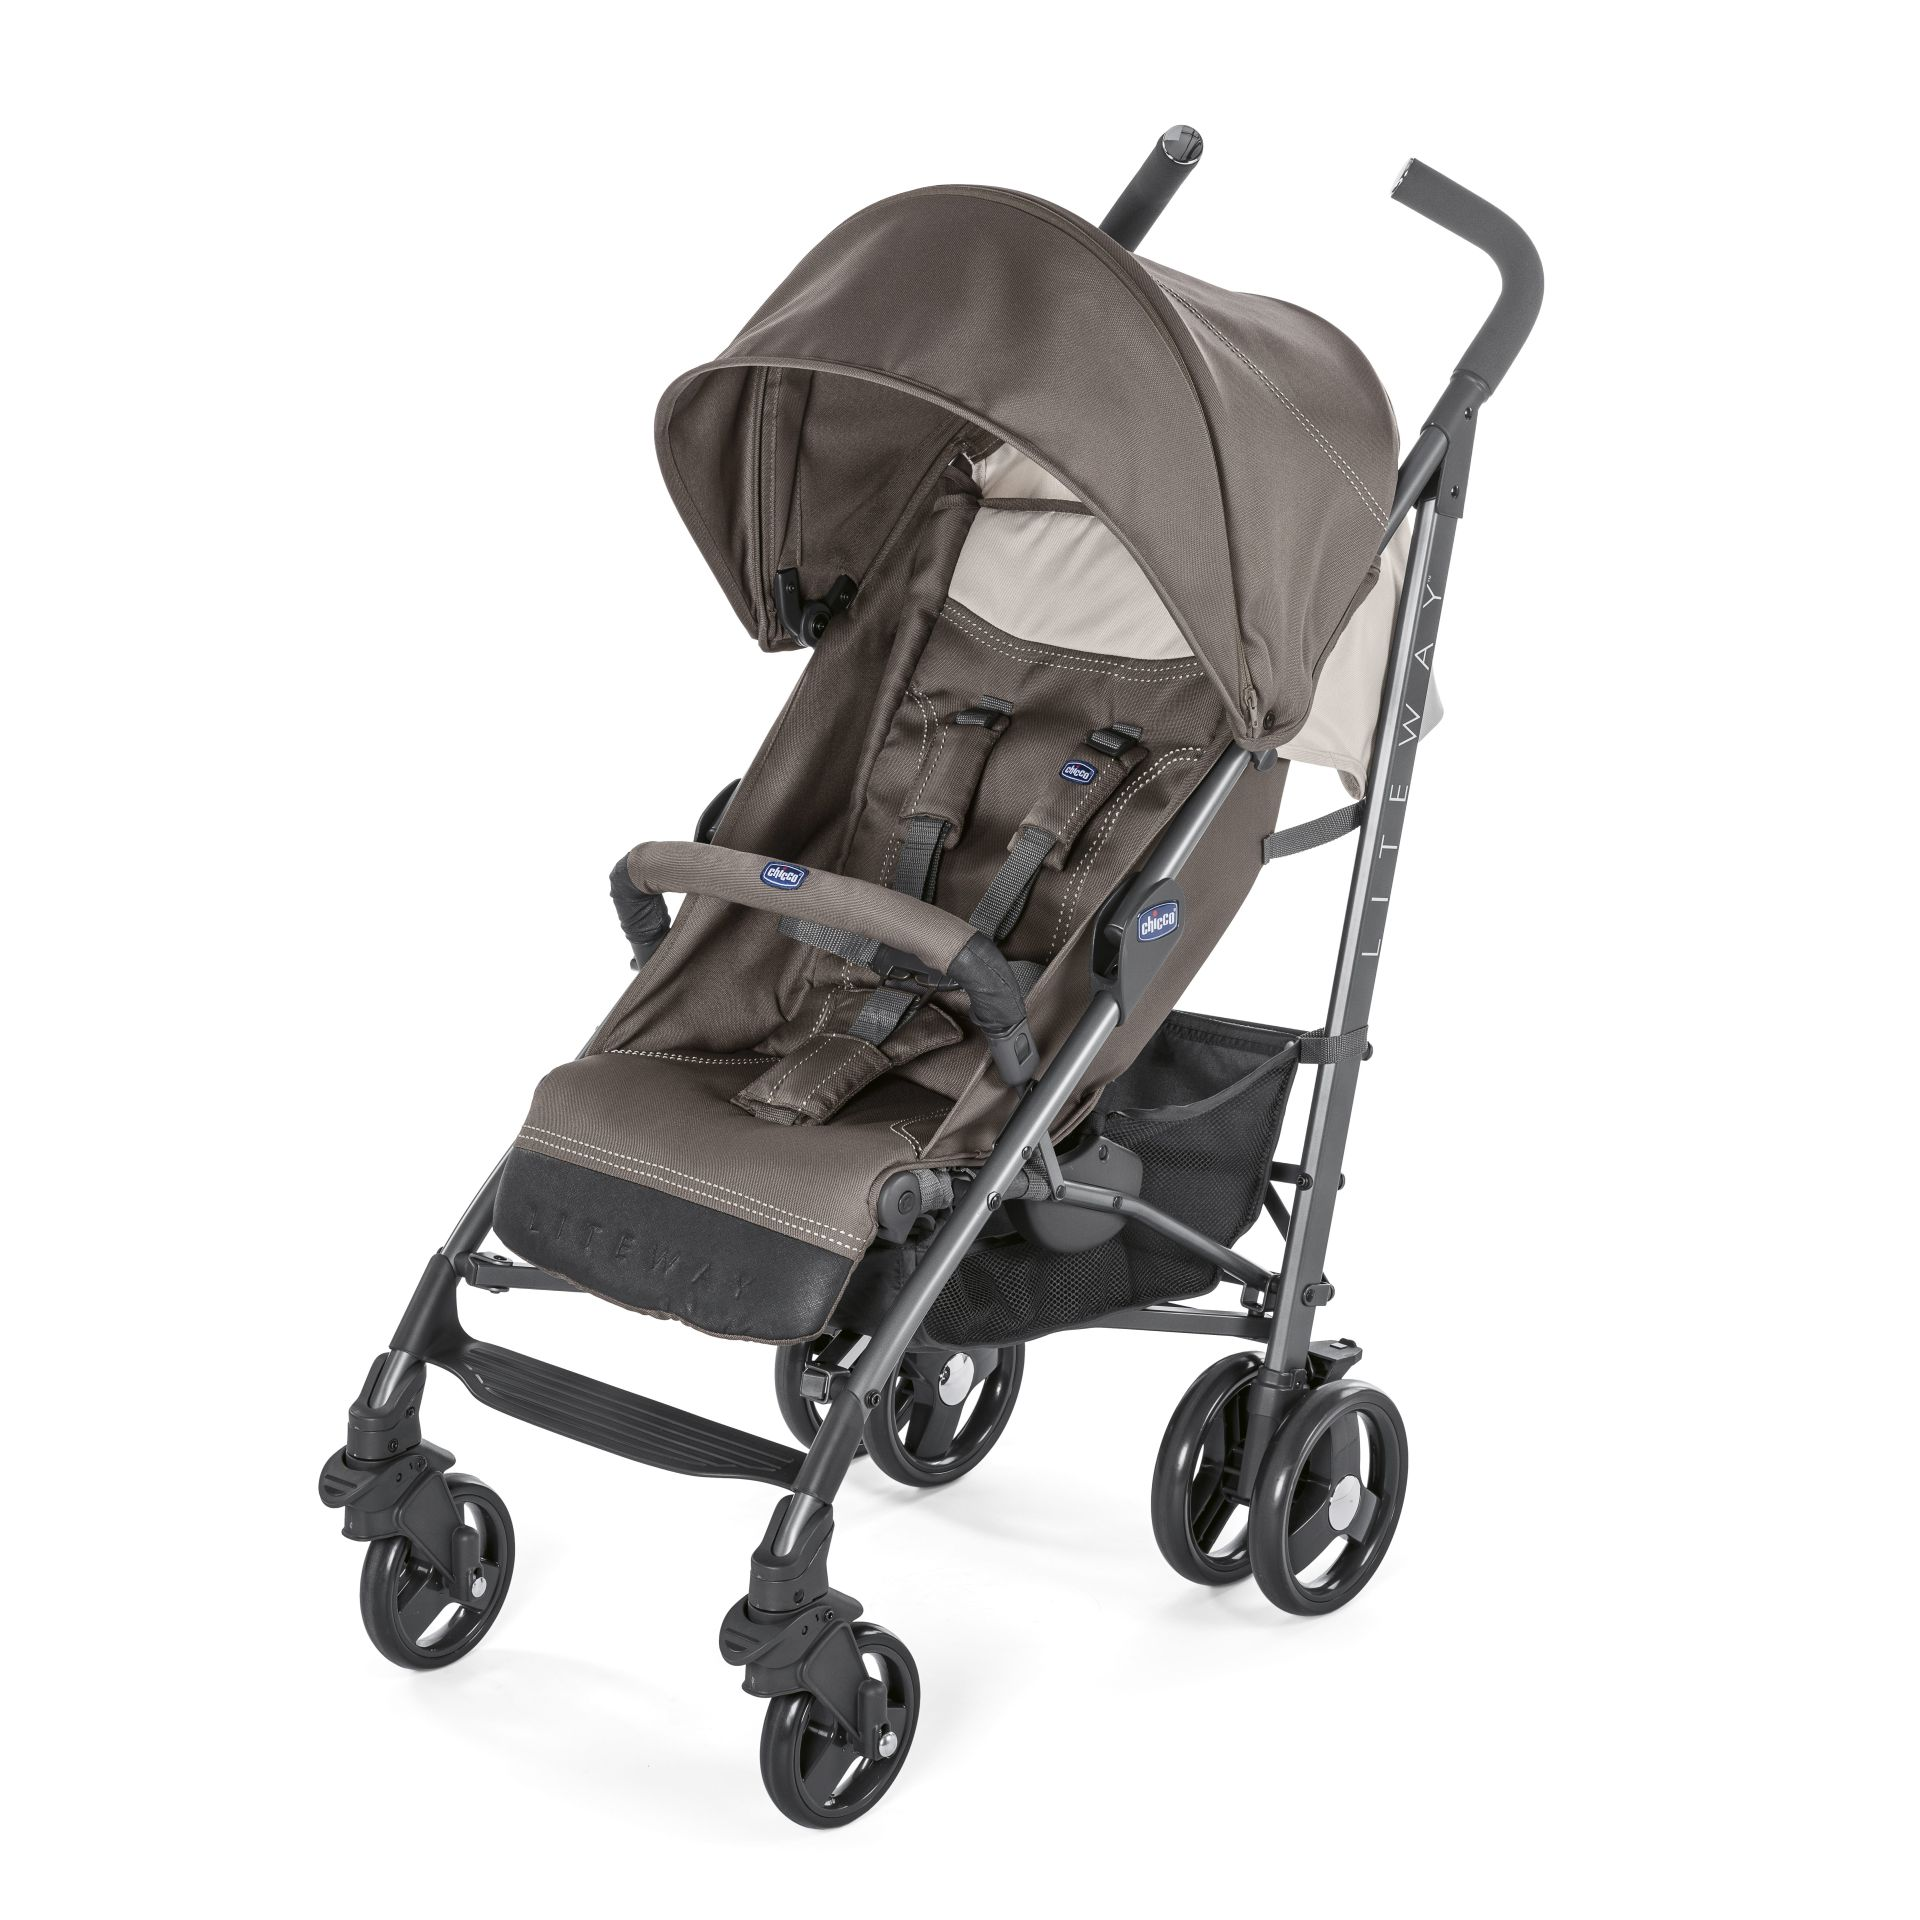 chicco lite way 3 pushchair 2018 dove grey buy at kidsroom strollers. Black Bedroom Furniture Sets. Home Design Ideas